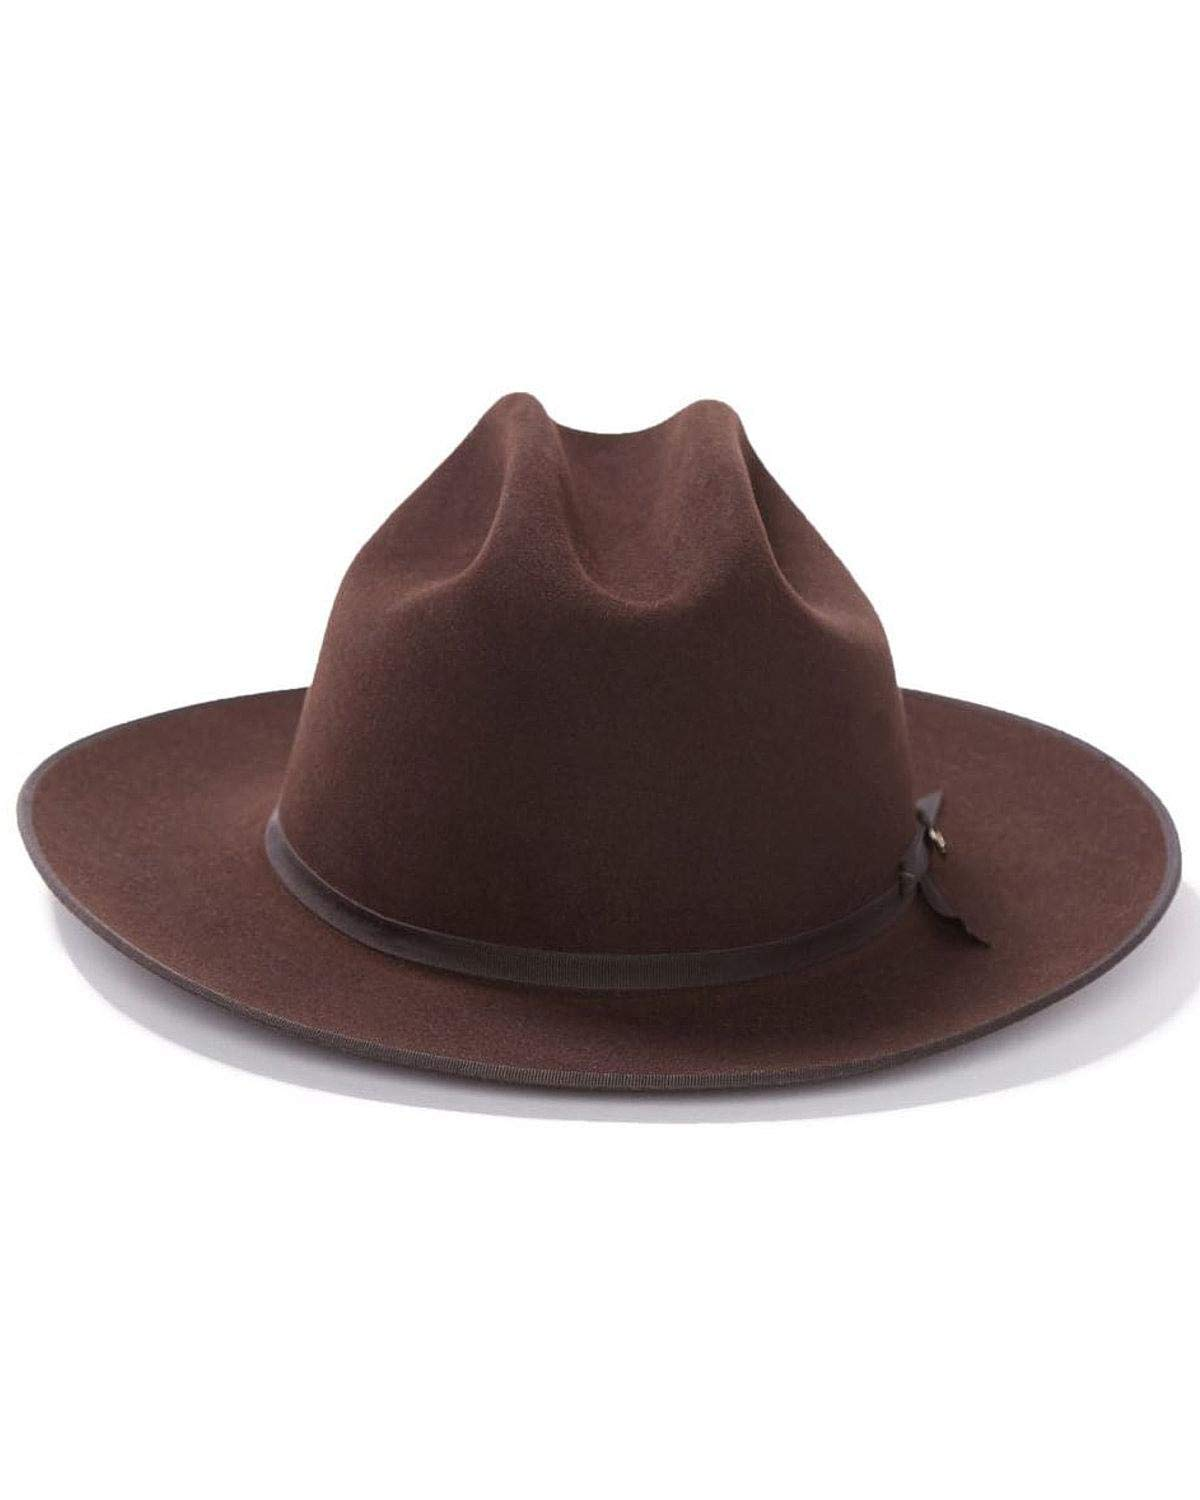 Stetson Men's 6X Open Road Fur Felt Cowboy Hat Chocolate 7 1/8